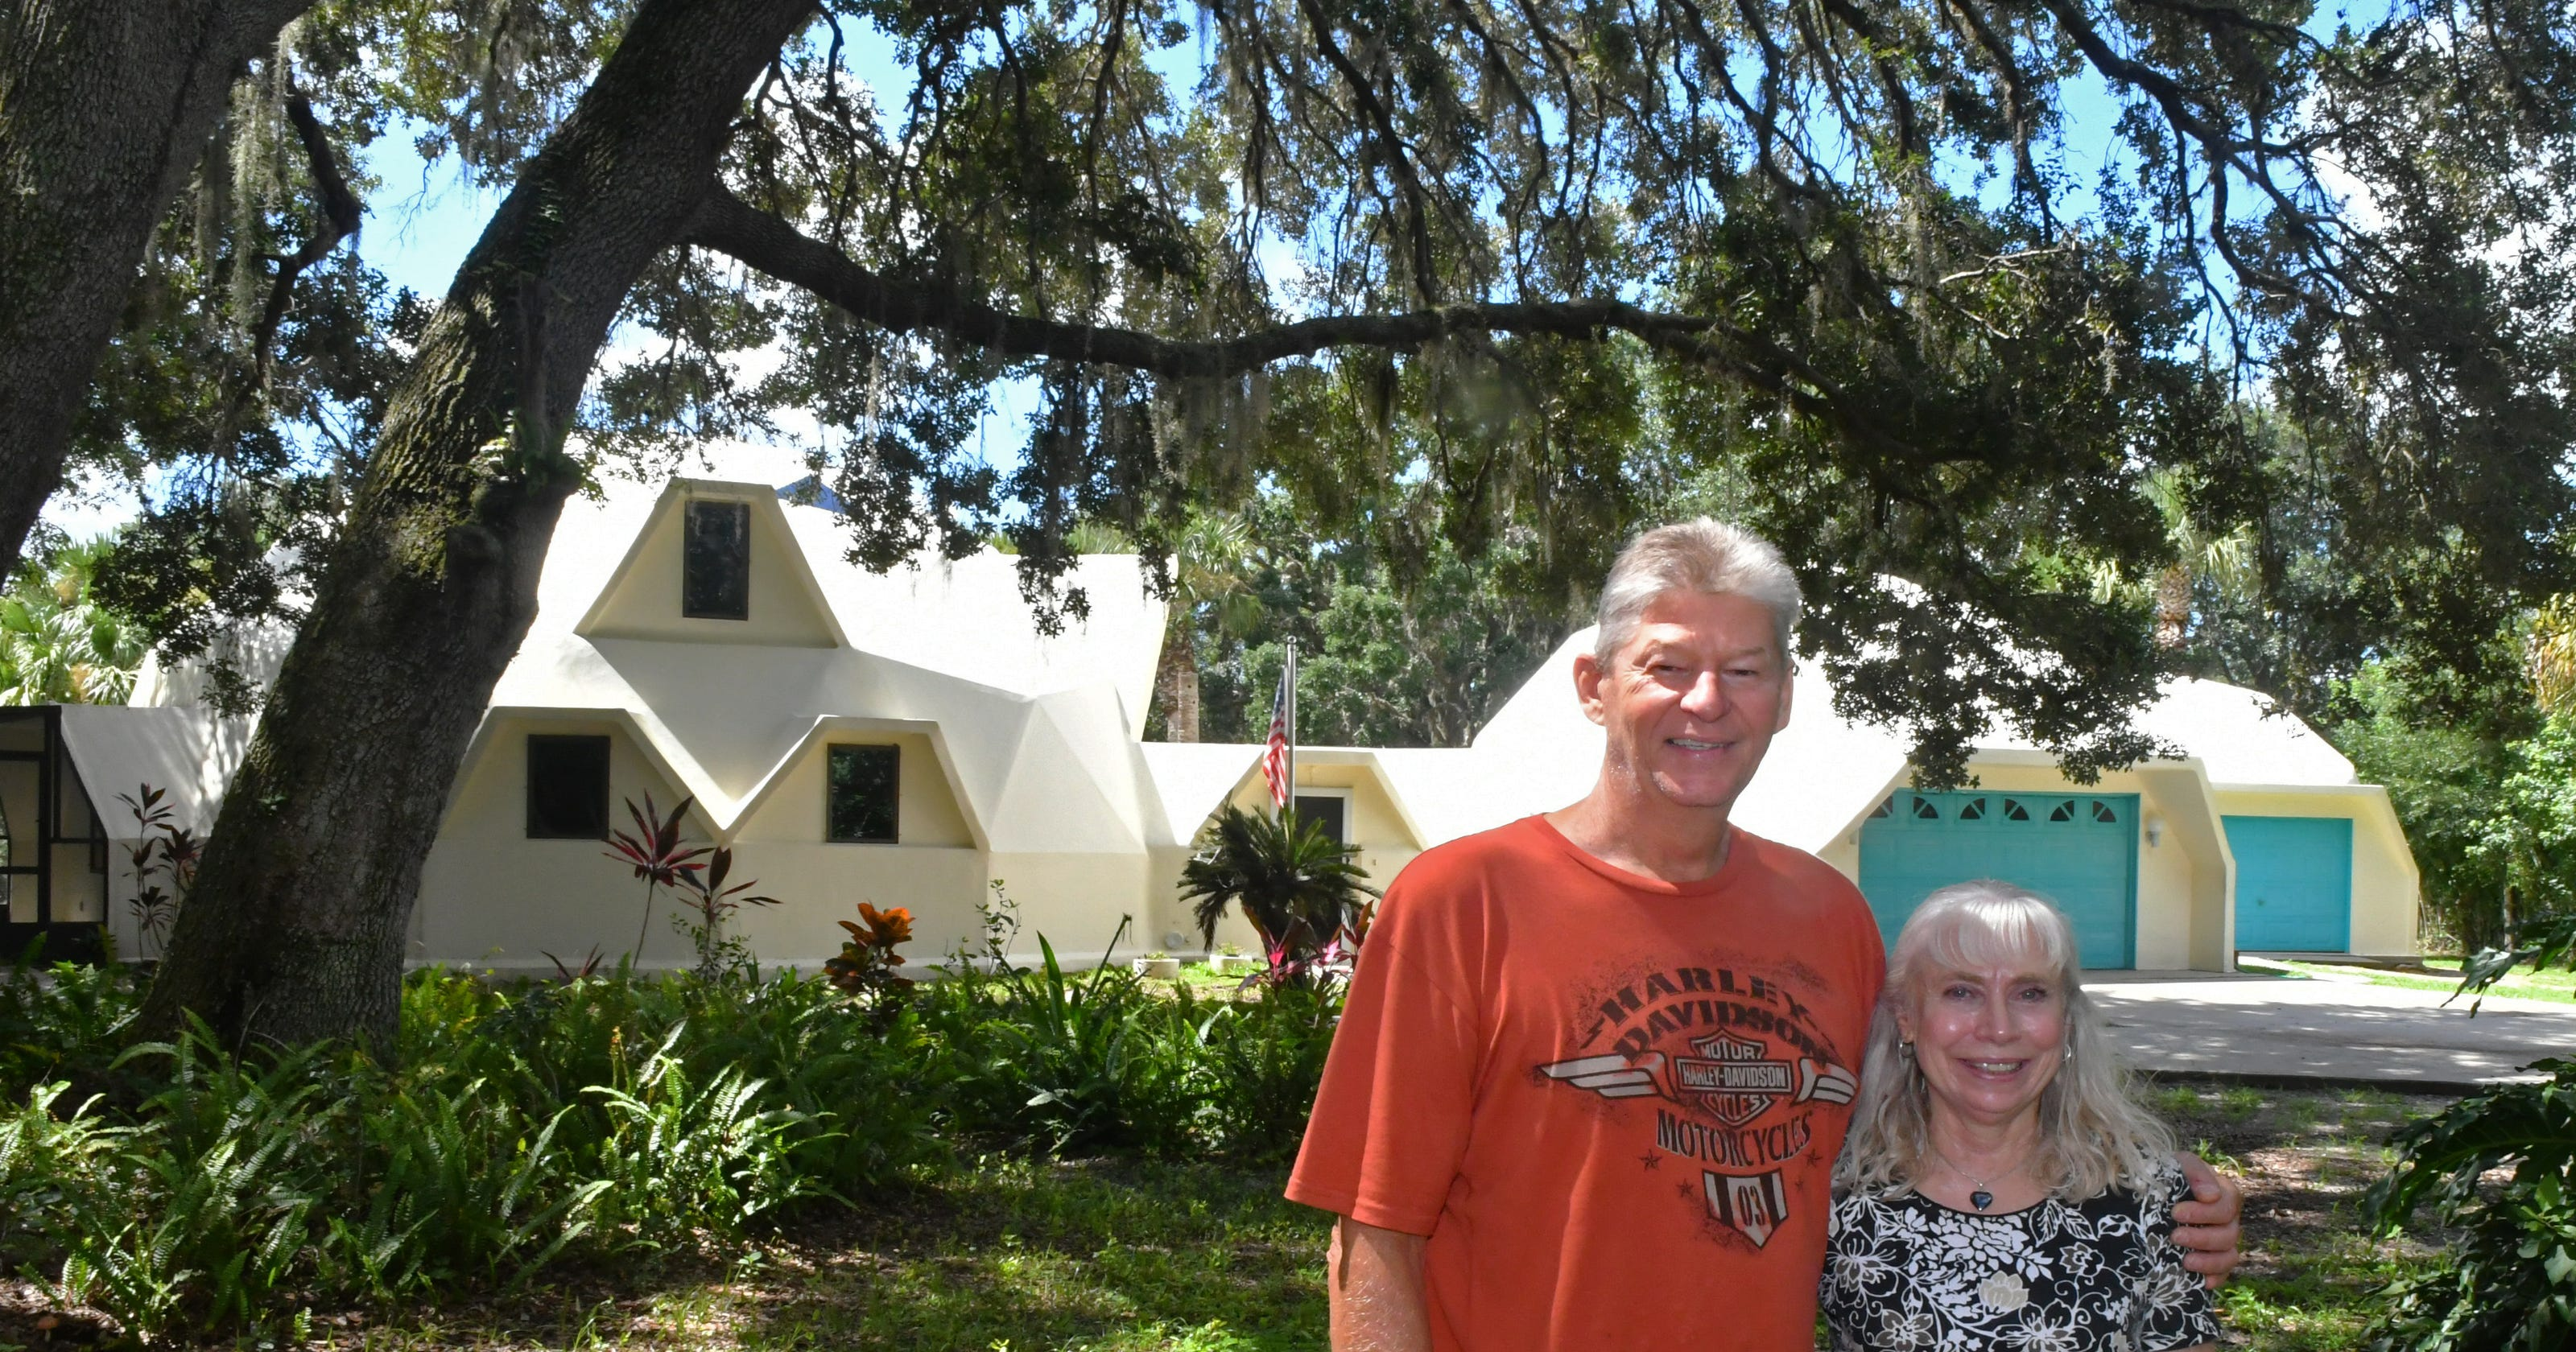 Peek inside this geodesic dome house for sale in Canaveral